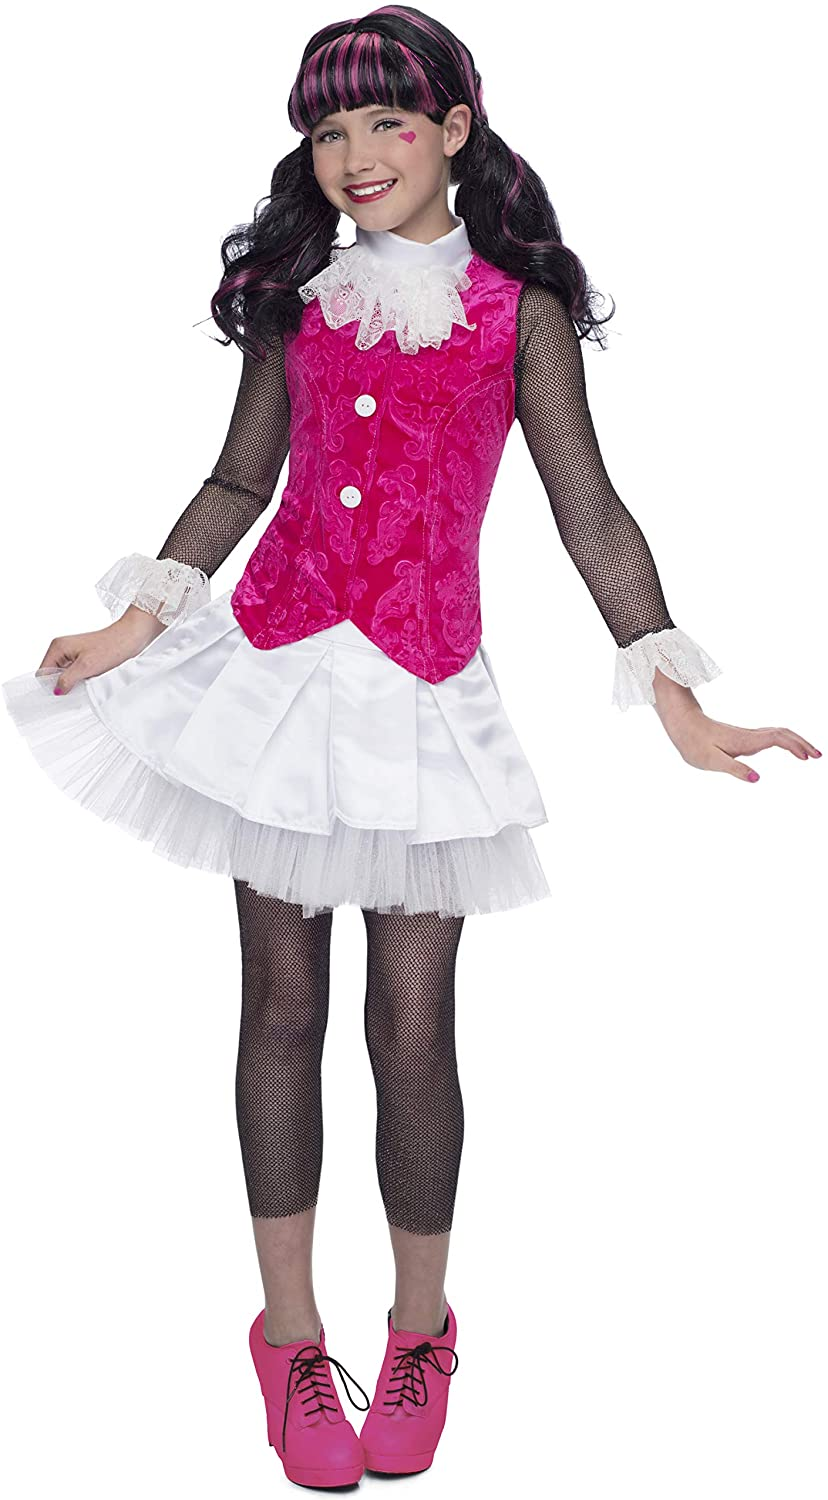 Monster High Draculaura Costume, X-Large, One Color